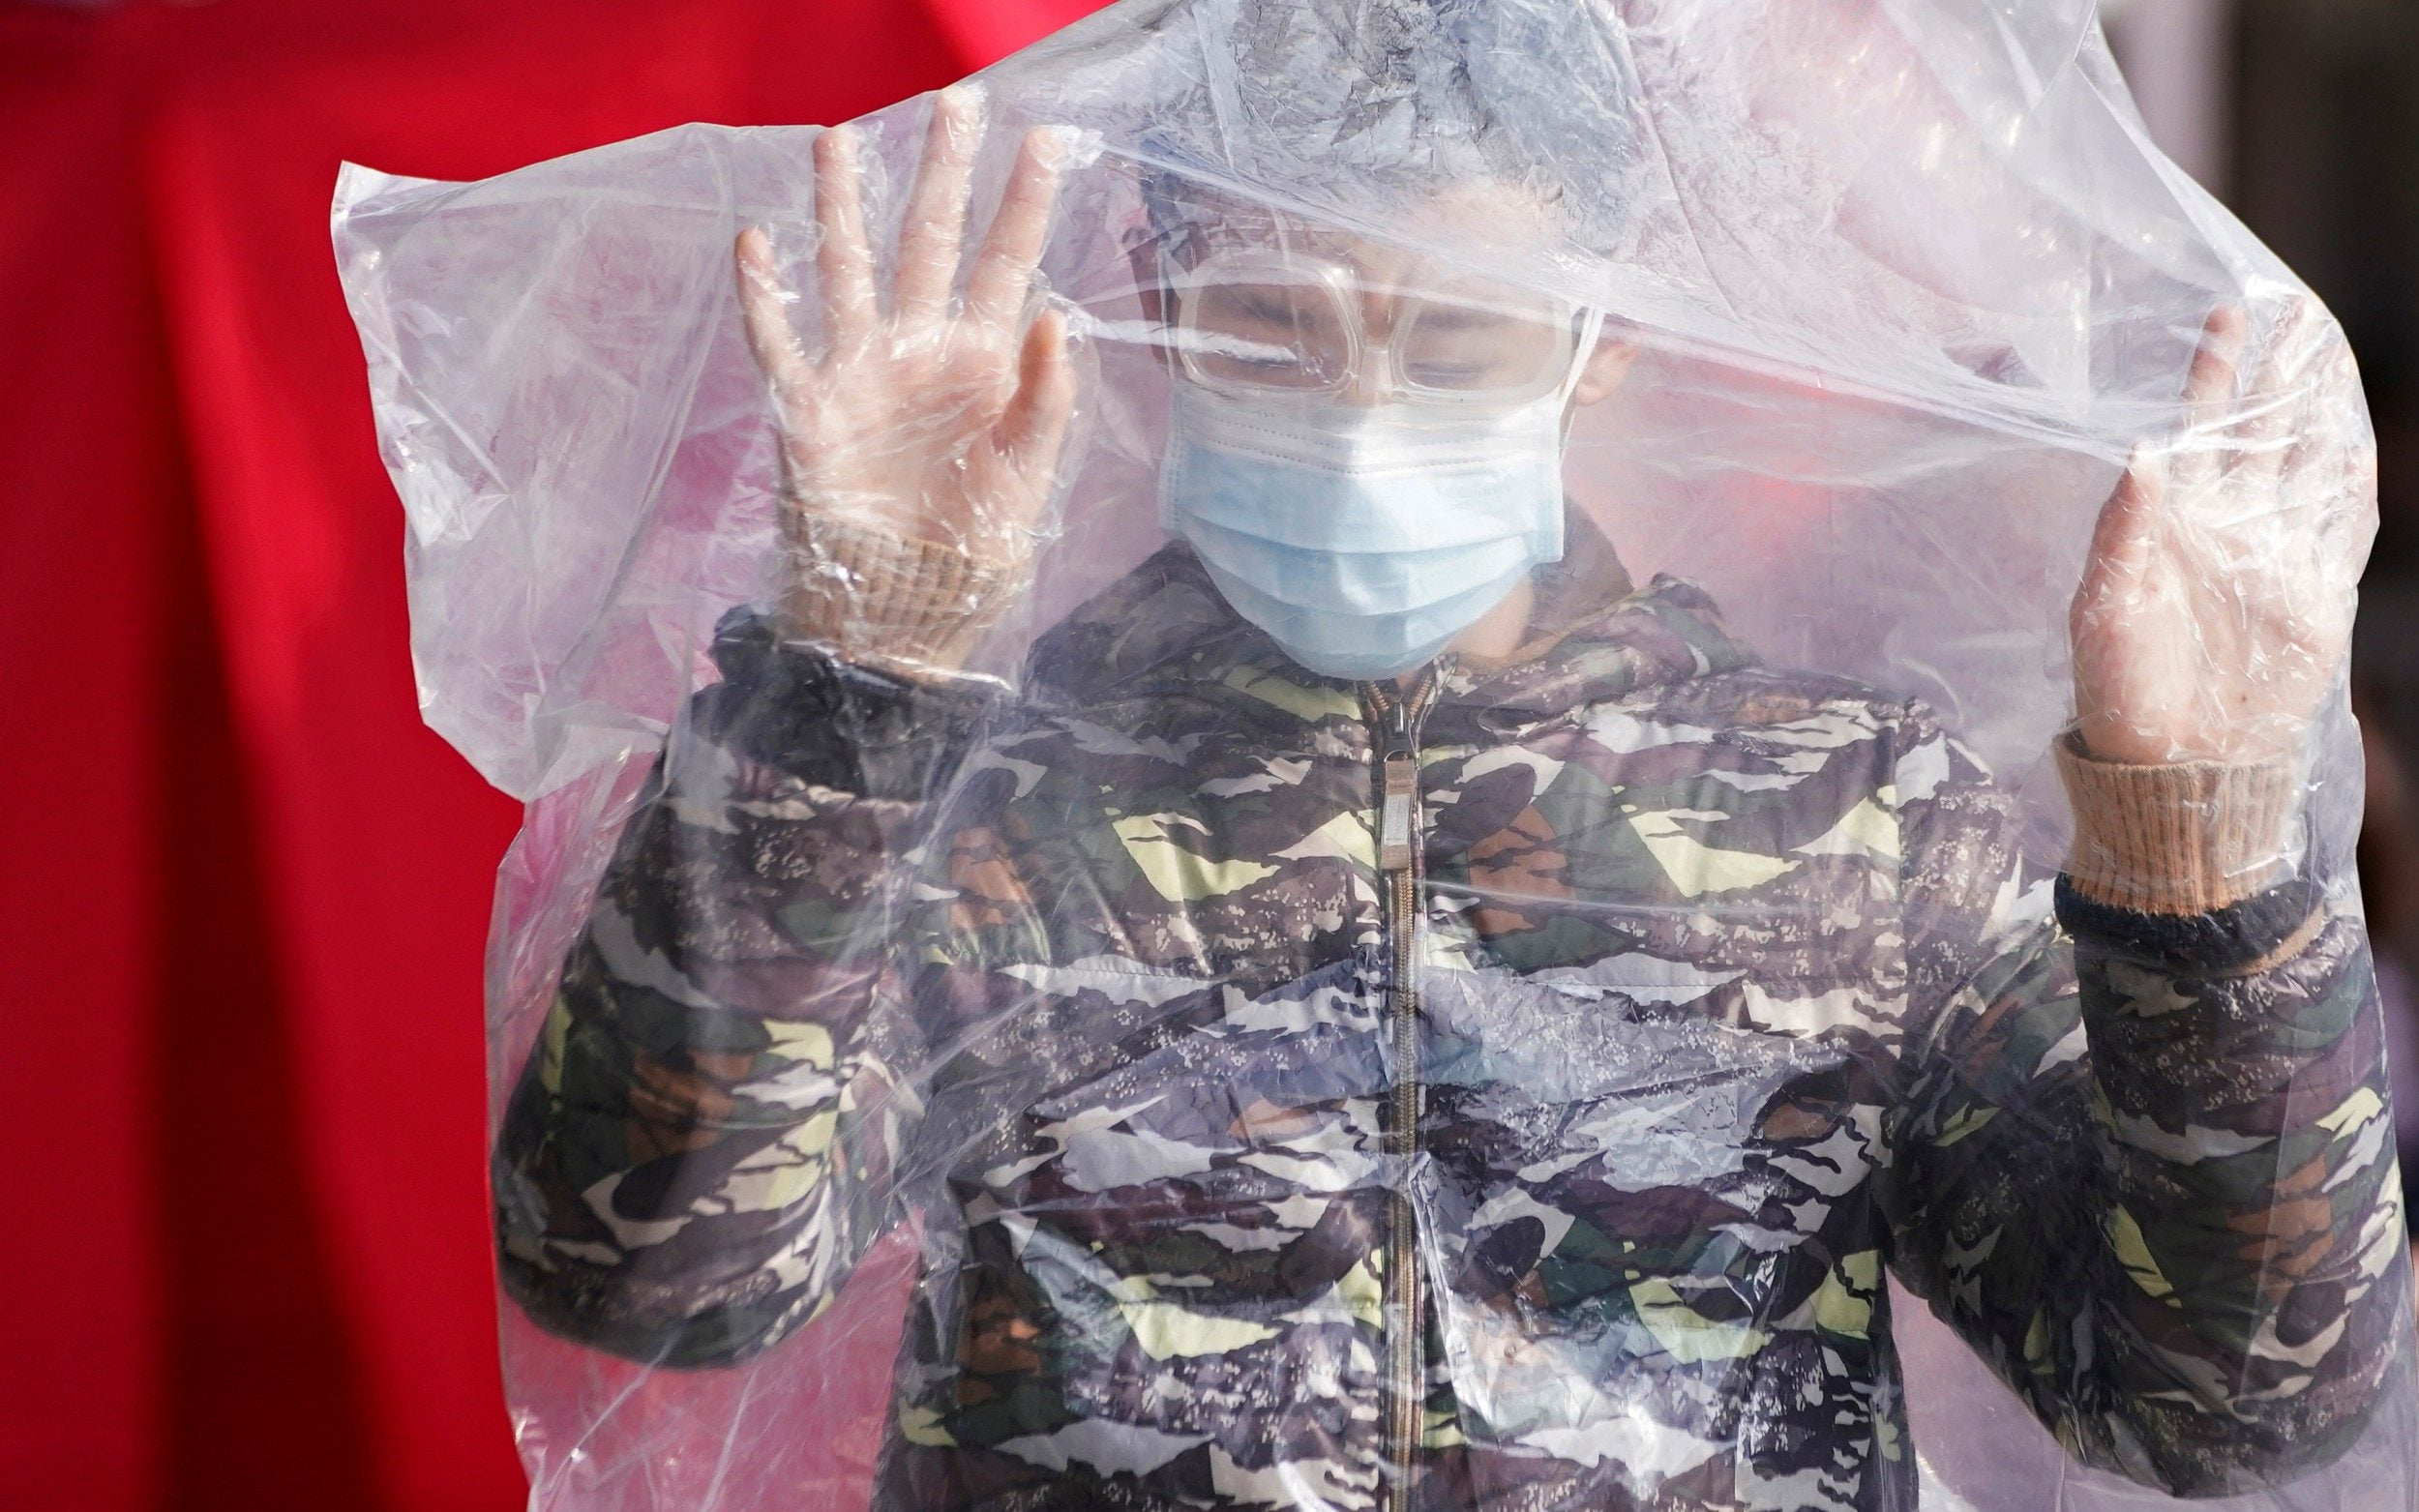 China allocates $10bn to contain coronavirus as death toll outstrips 2003 Sars outbreak